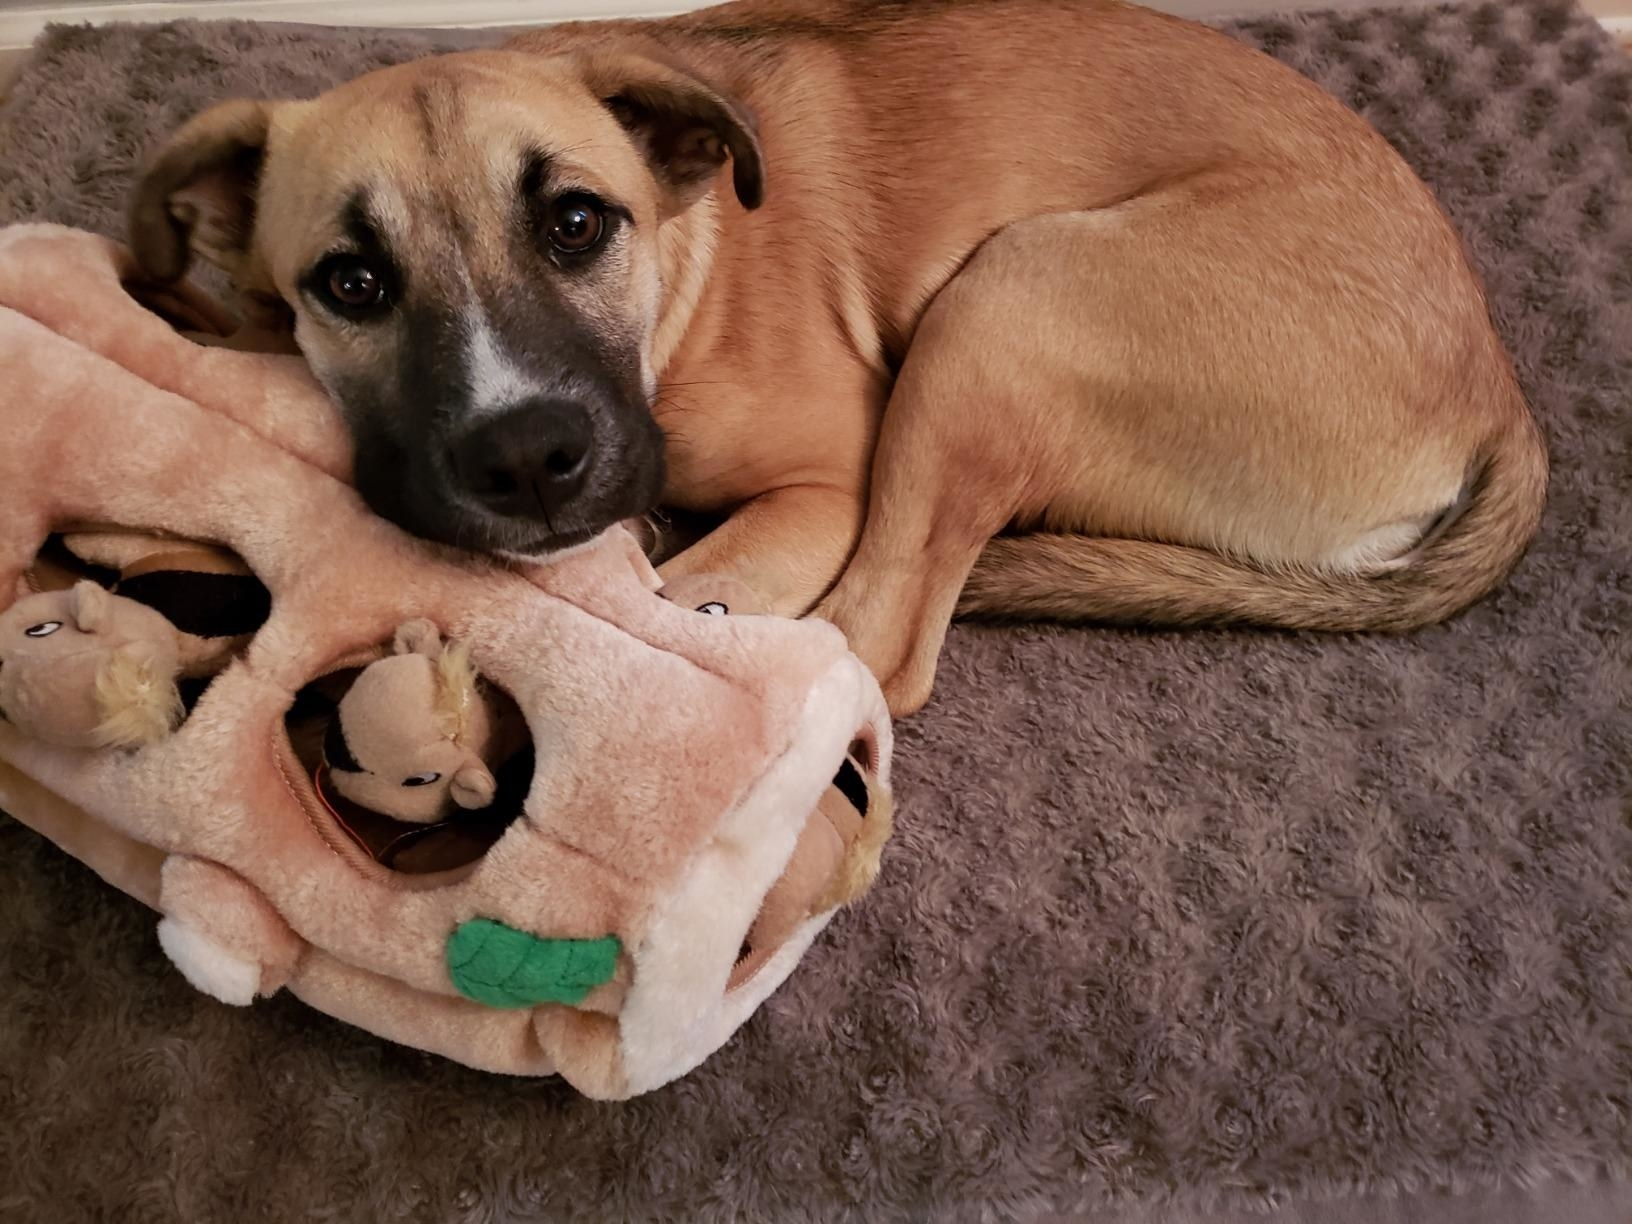 Reviewer's dog cuddling with the toy